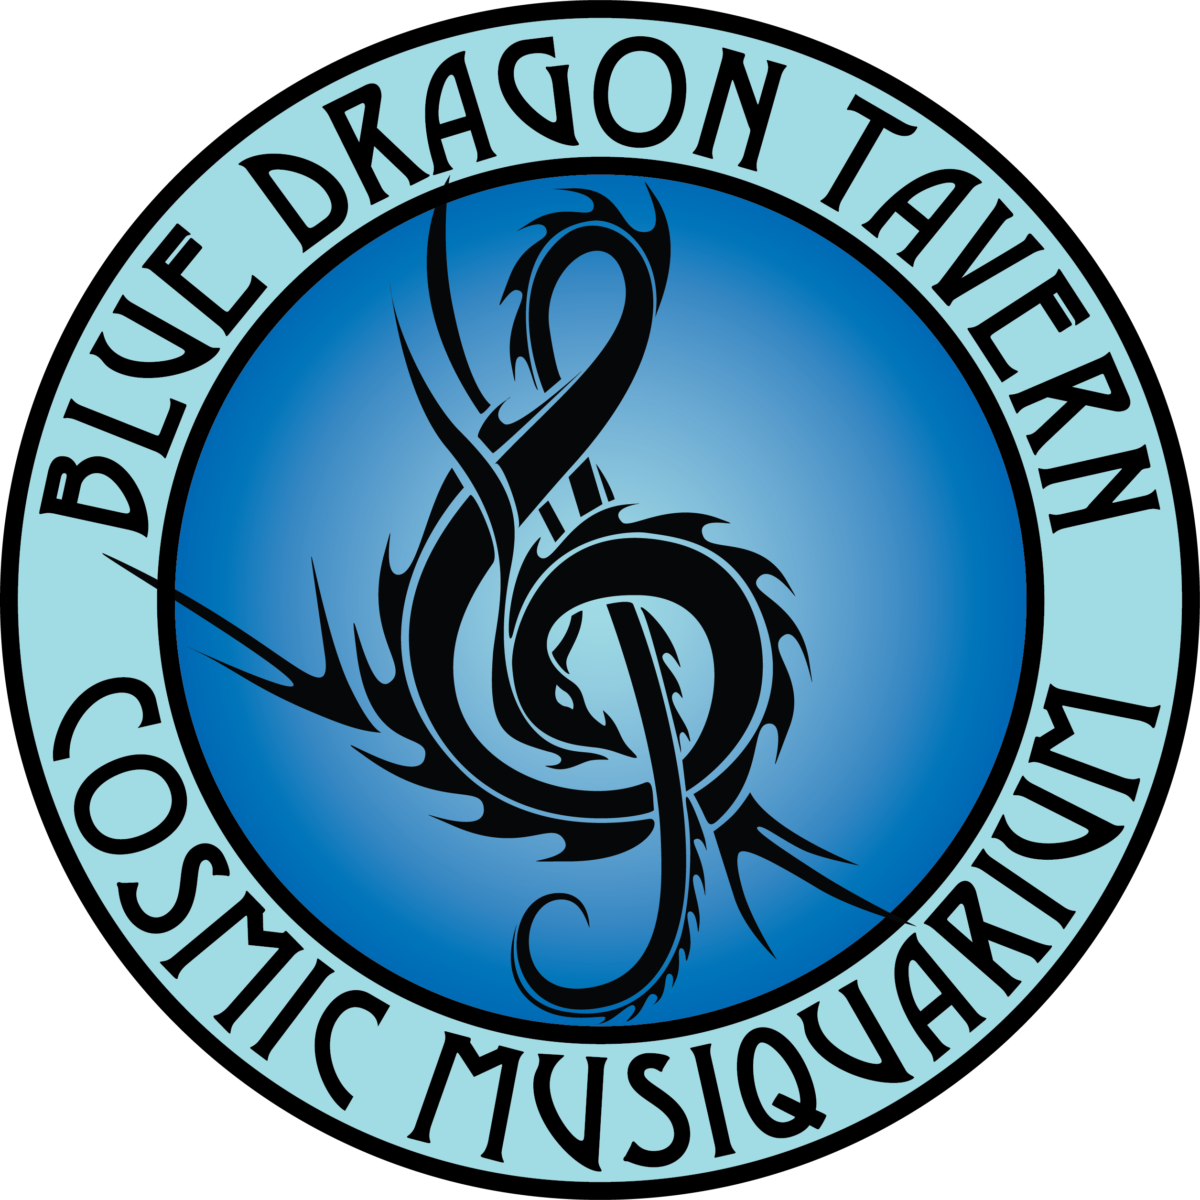 Blue Dragon Tavern & Cosmic Musiquarium